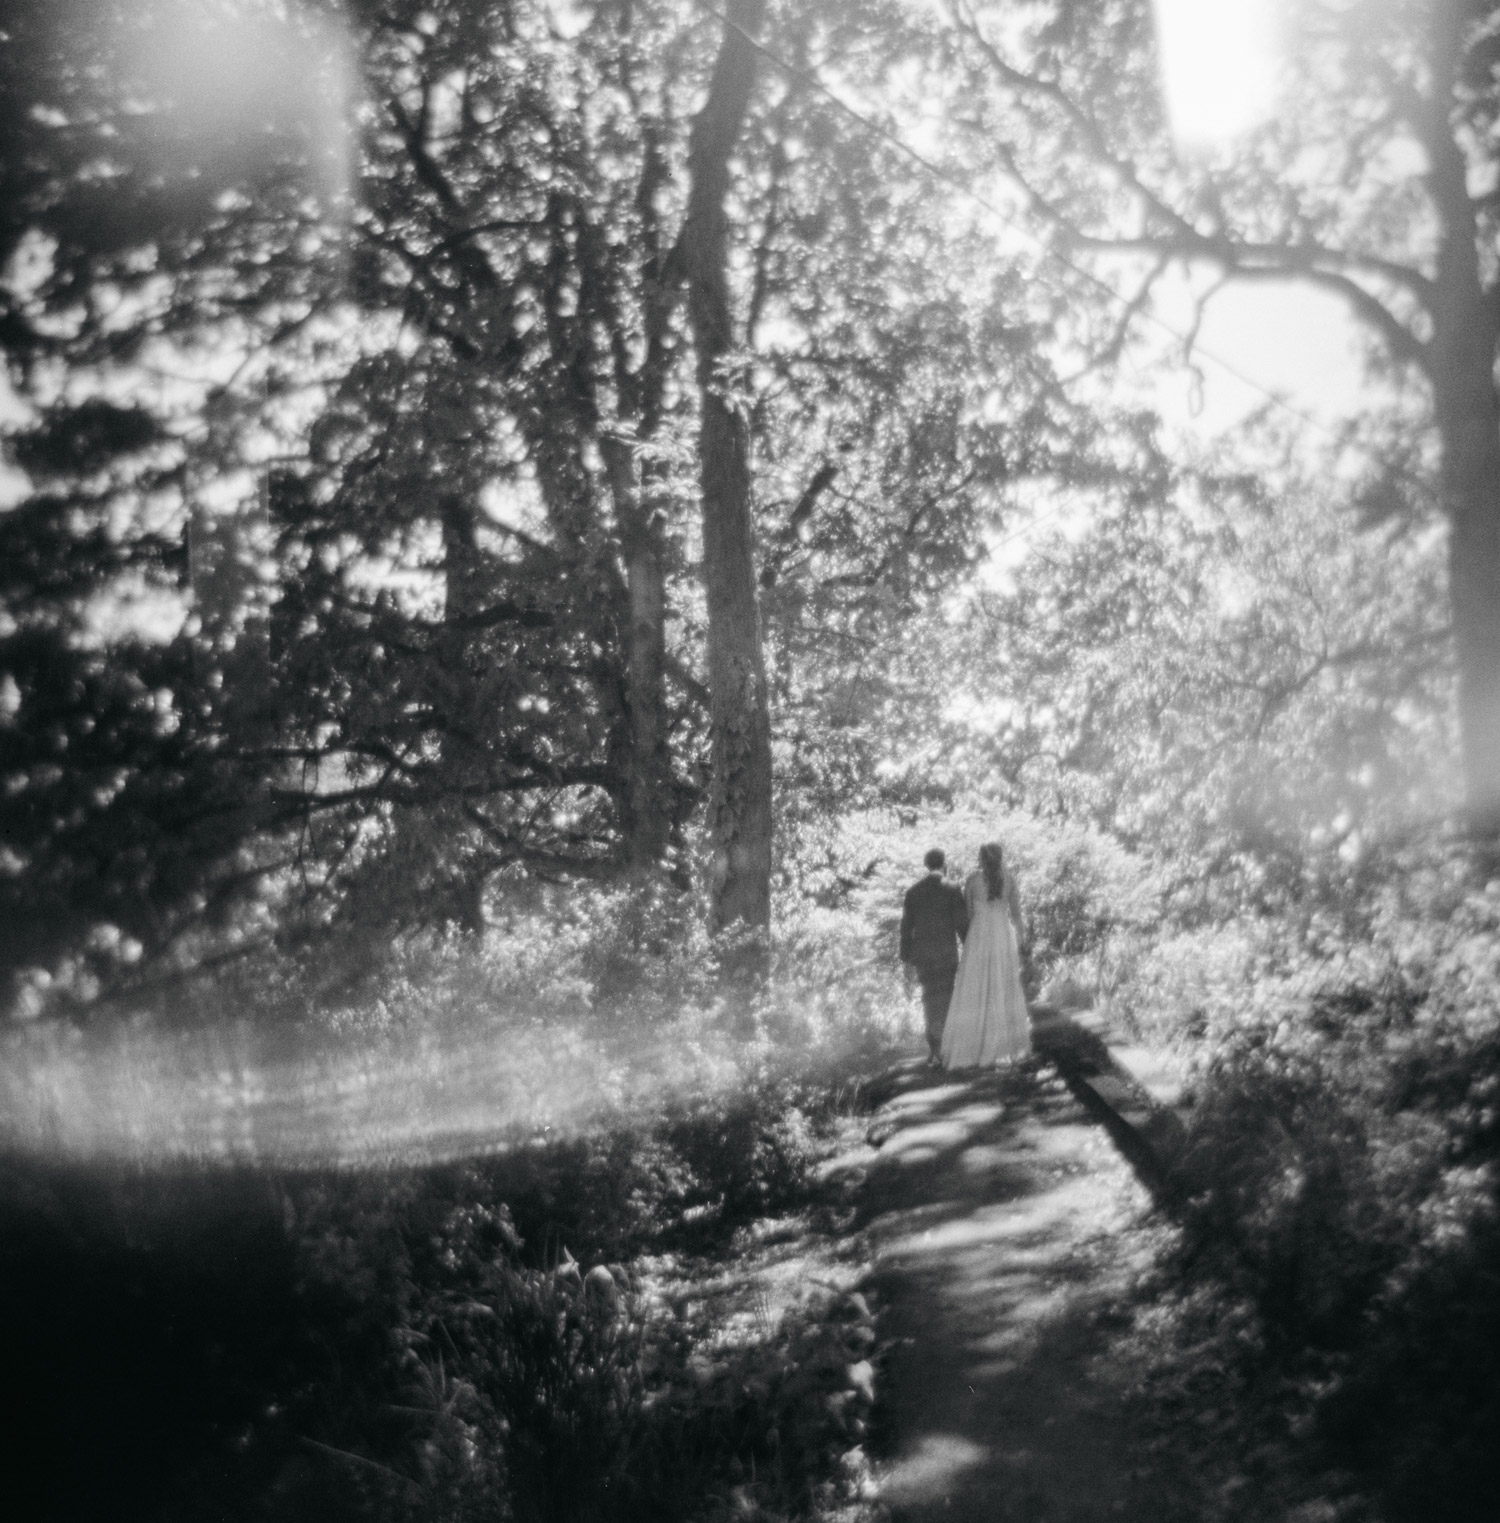 Holga film portrait of bride and groom walking through forest